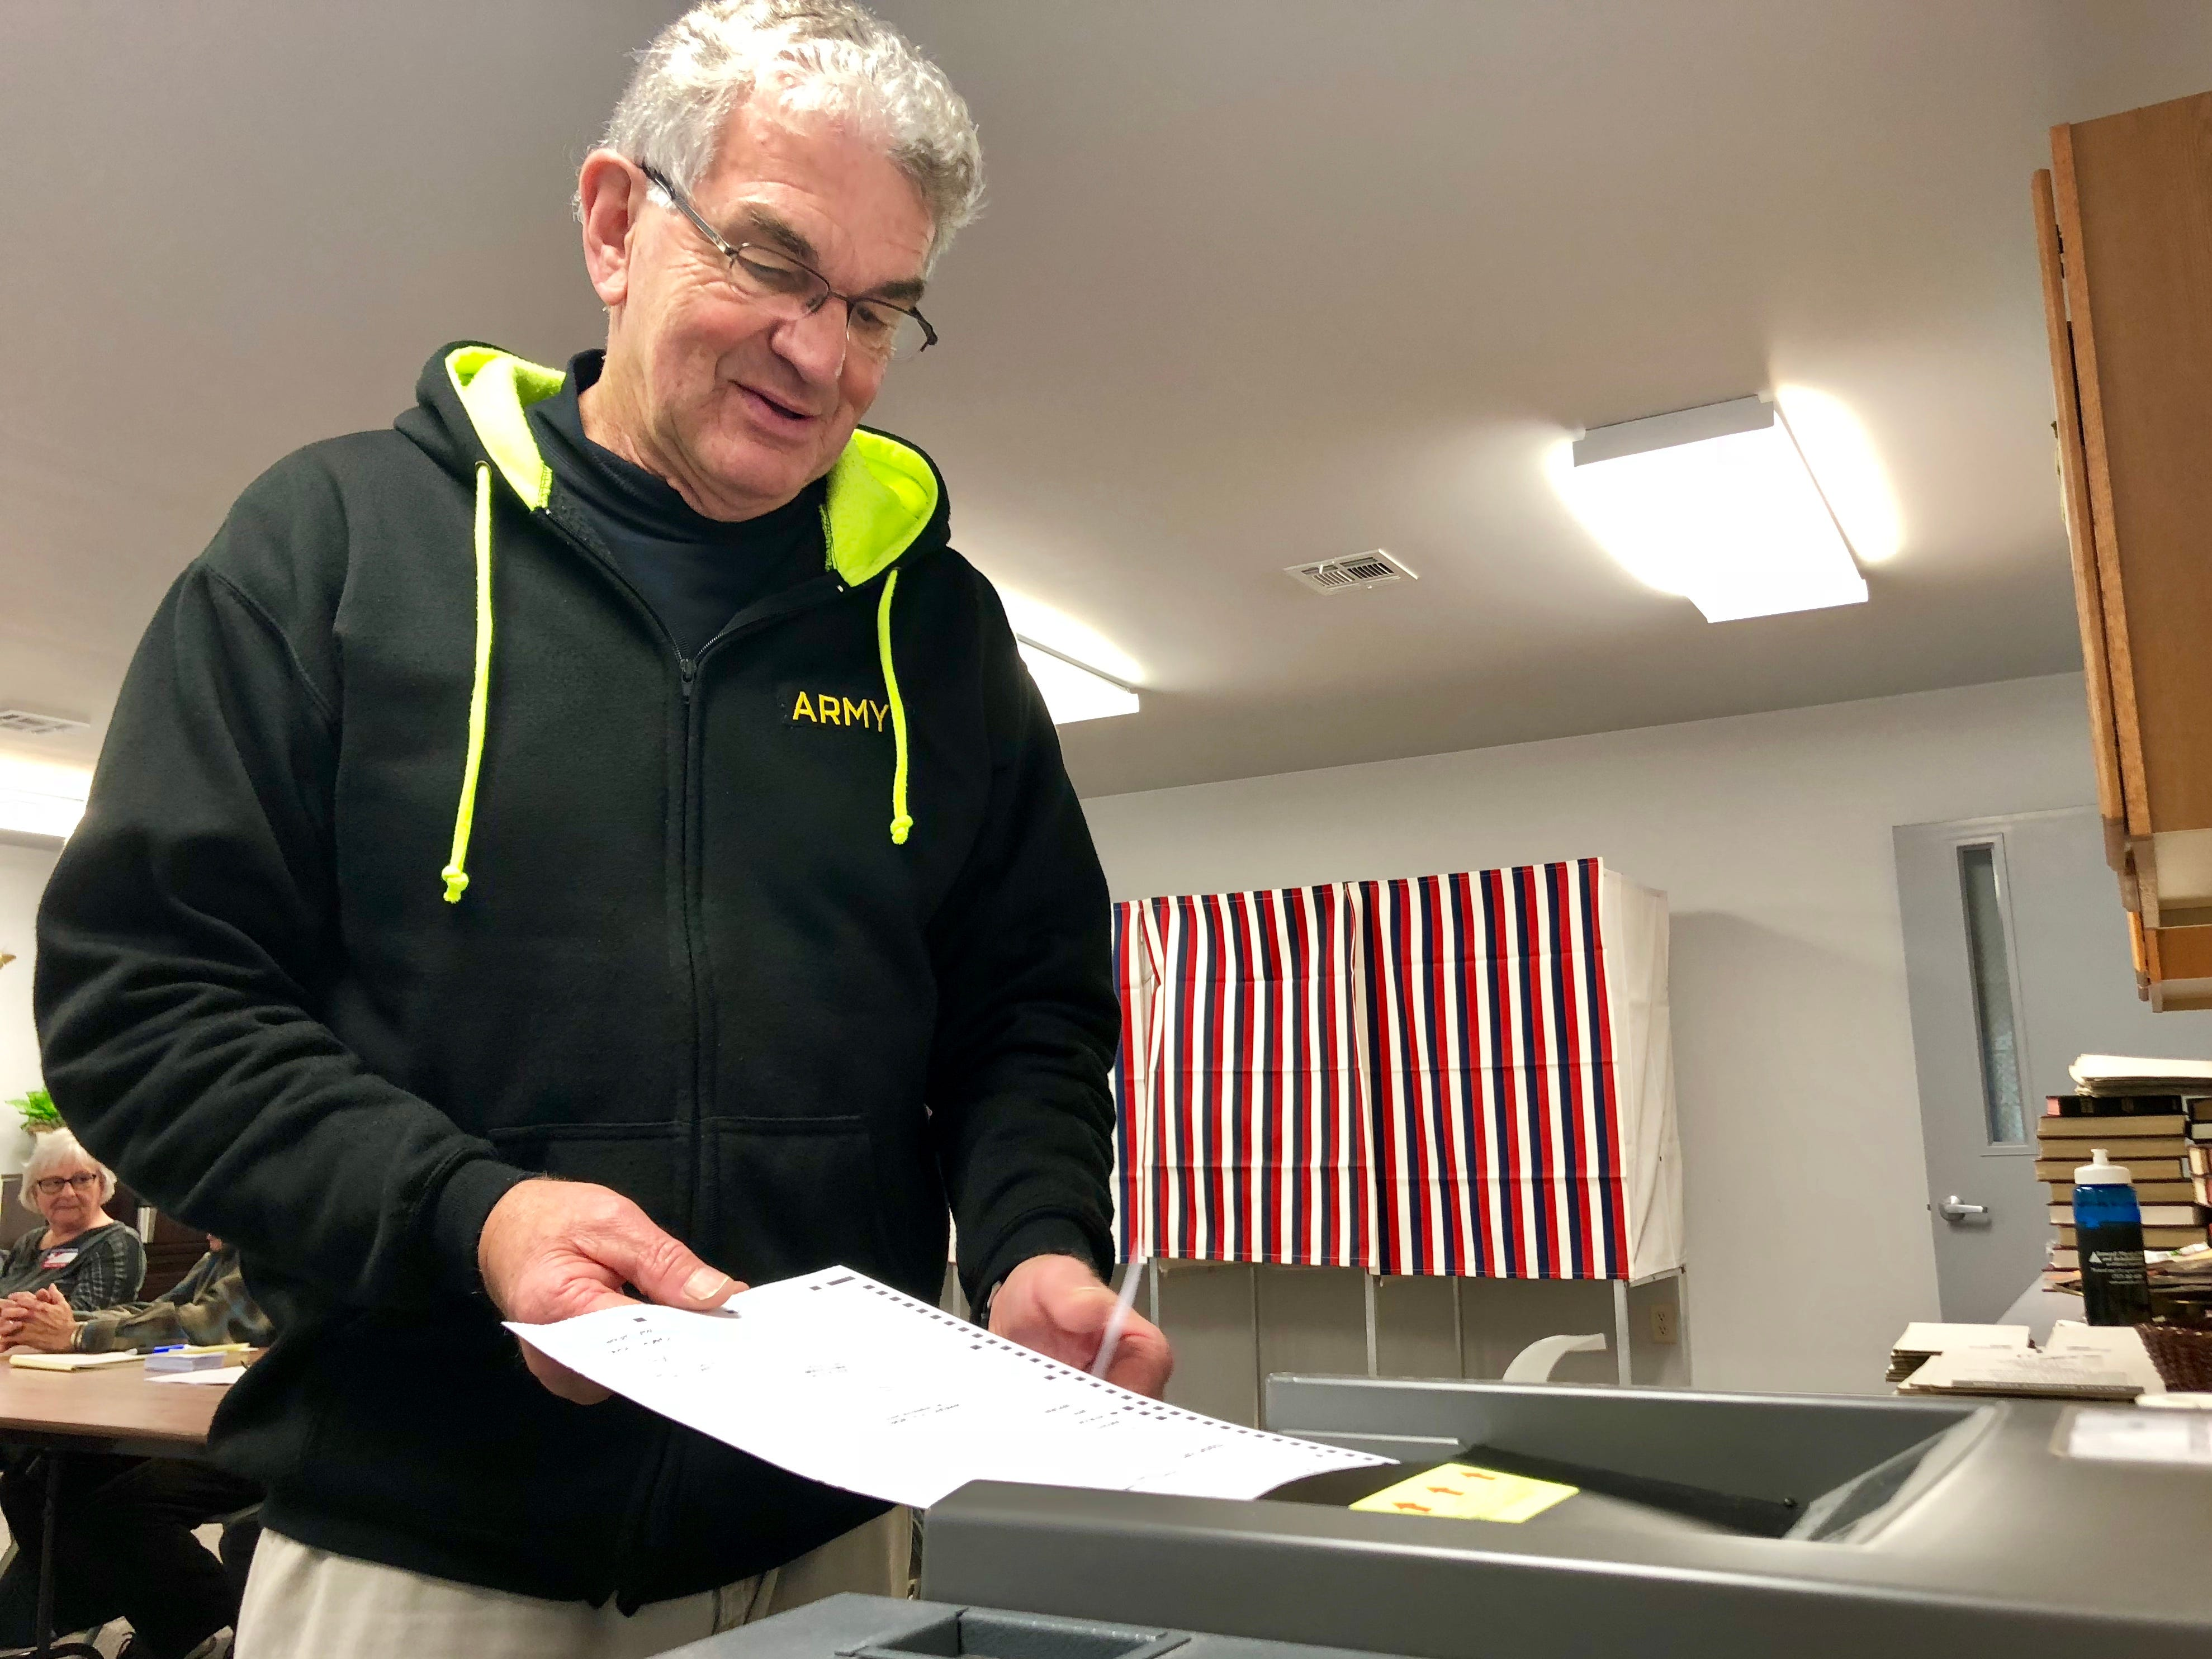 Greencastle resident William Derrick puts his ballot into the scanner at the Greencastle Church of the Brethren during the mid-term election the morning of Tuesday, Nov. 6, 2018.